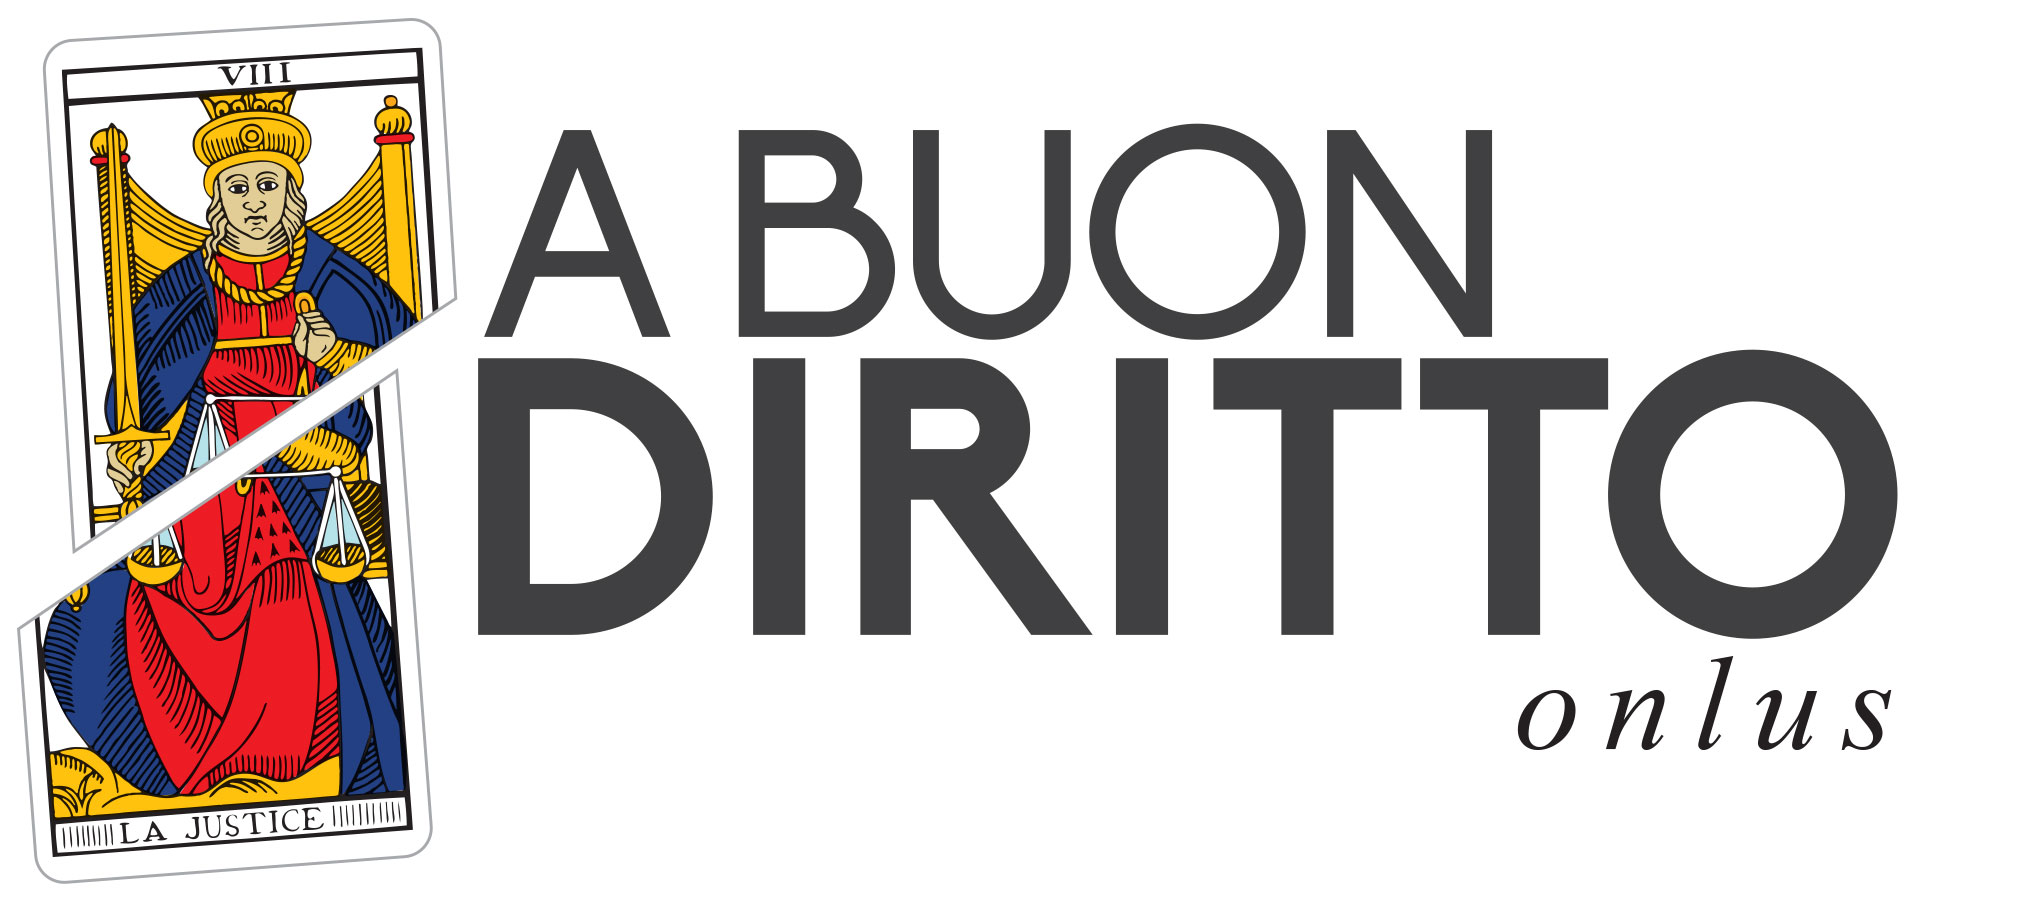 A Buon Diritto Onlus logo represents a sample of MarsellaiseTaroc chi Card, namely the Justice Card, since A Buon Diritto was founded with the aim to denunce the violations of the fundamental rights, as the card is cutted in the middle, to raise awarness on fundamental rights and social justice through advocacy activities and strategic litgation.